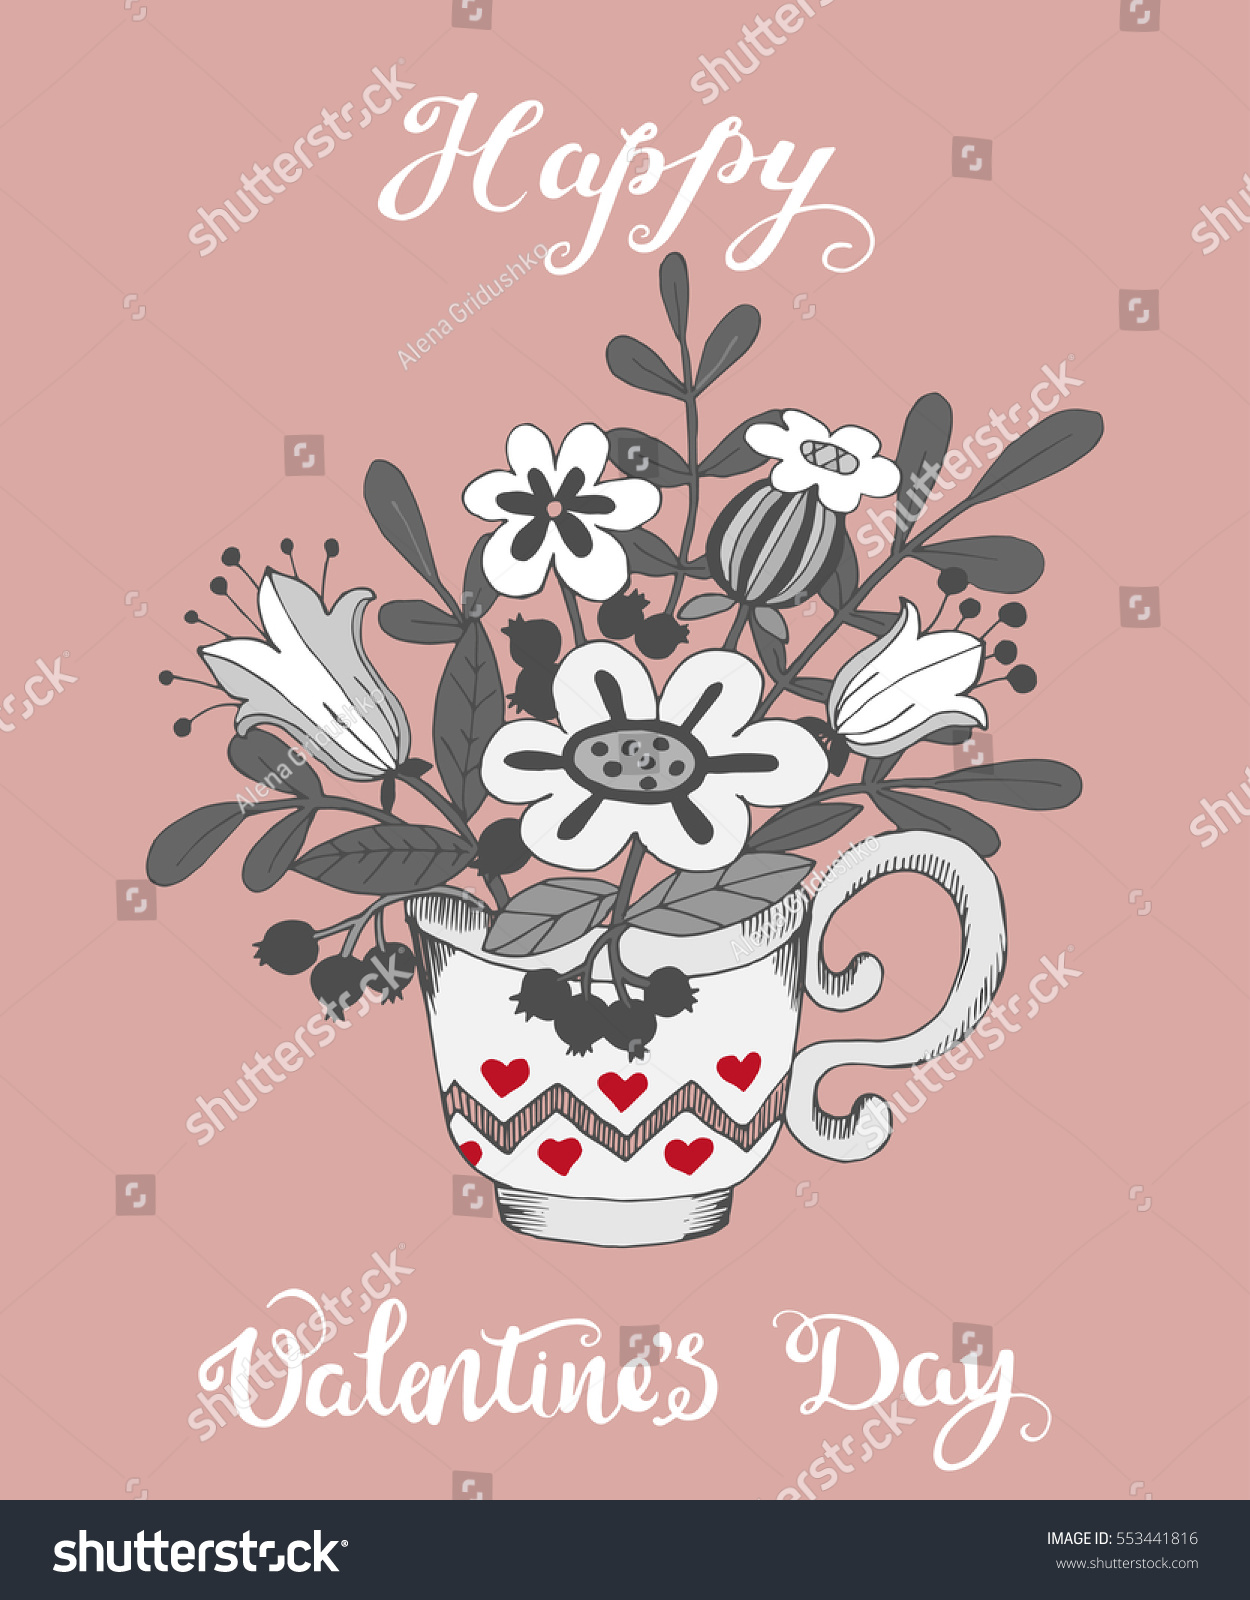 Handdrawn greeting card valentines day cup stock illustration hand drawn greeting card for valentines day cup with abstract flowers illustration kristyandbryce Gallery